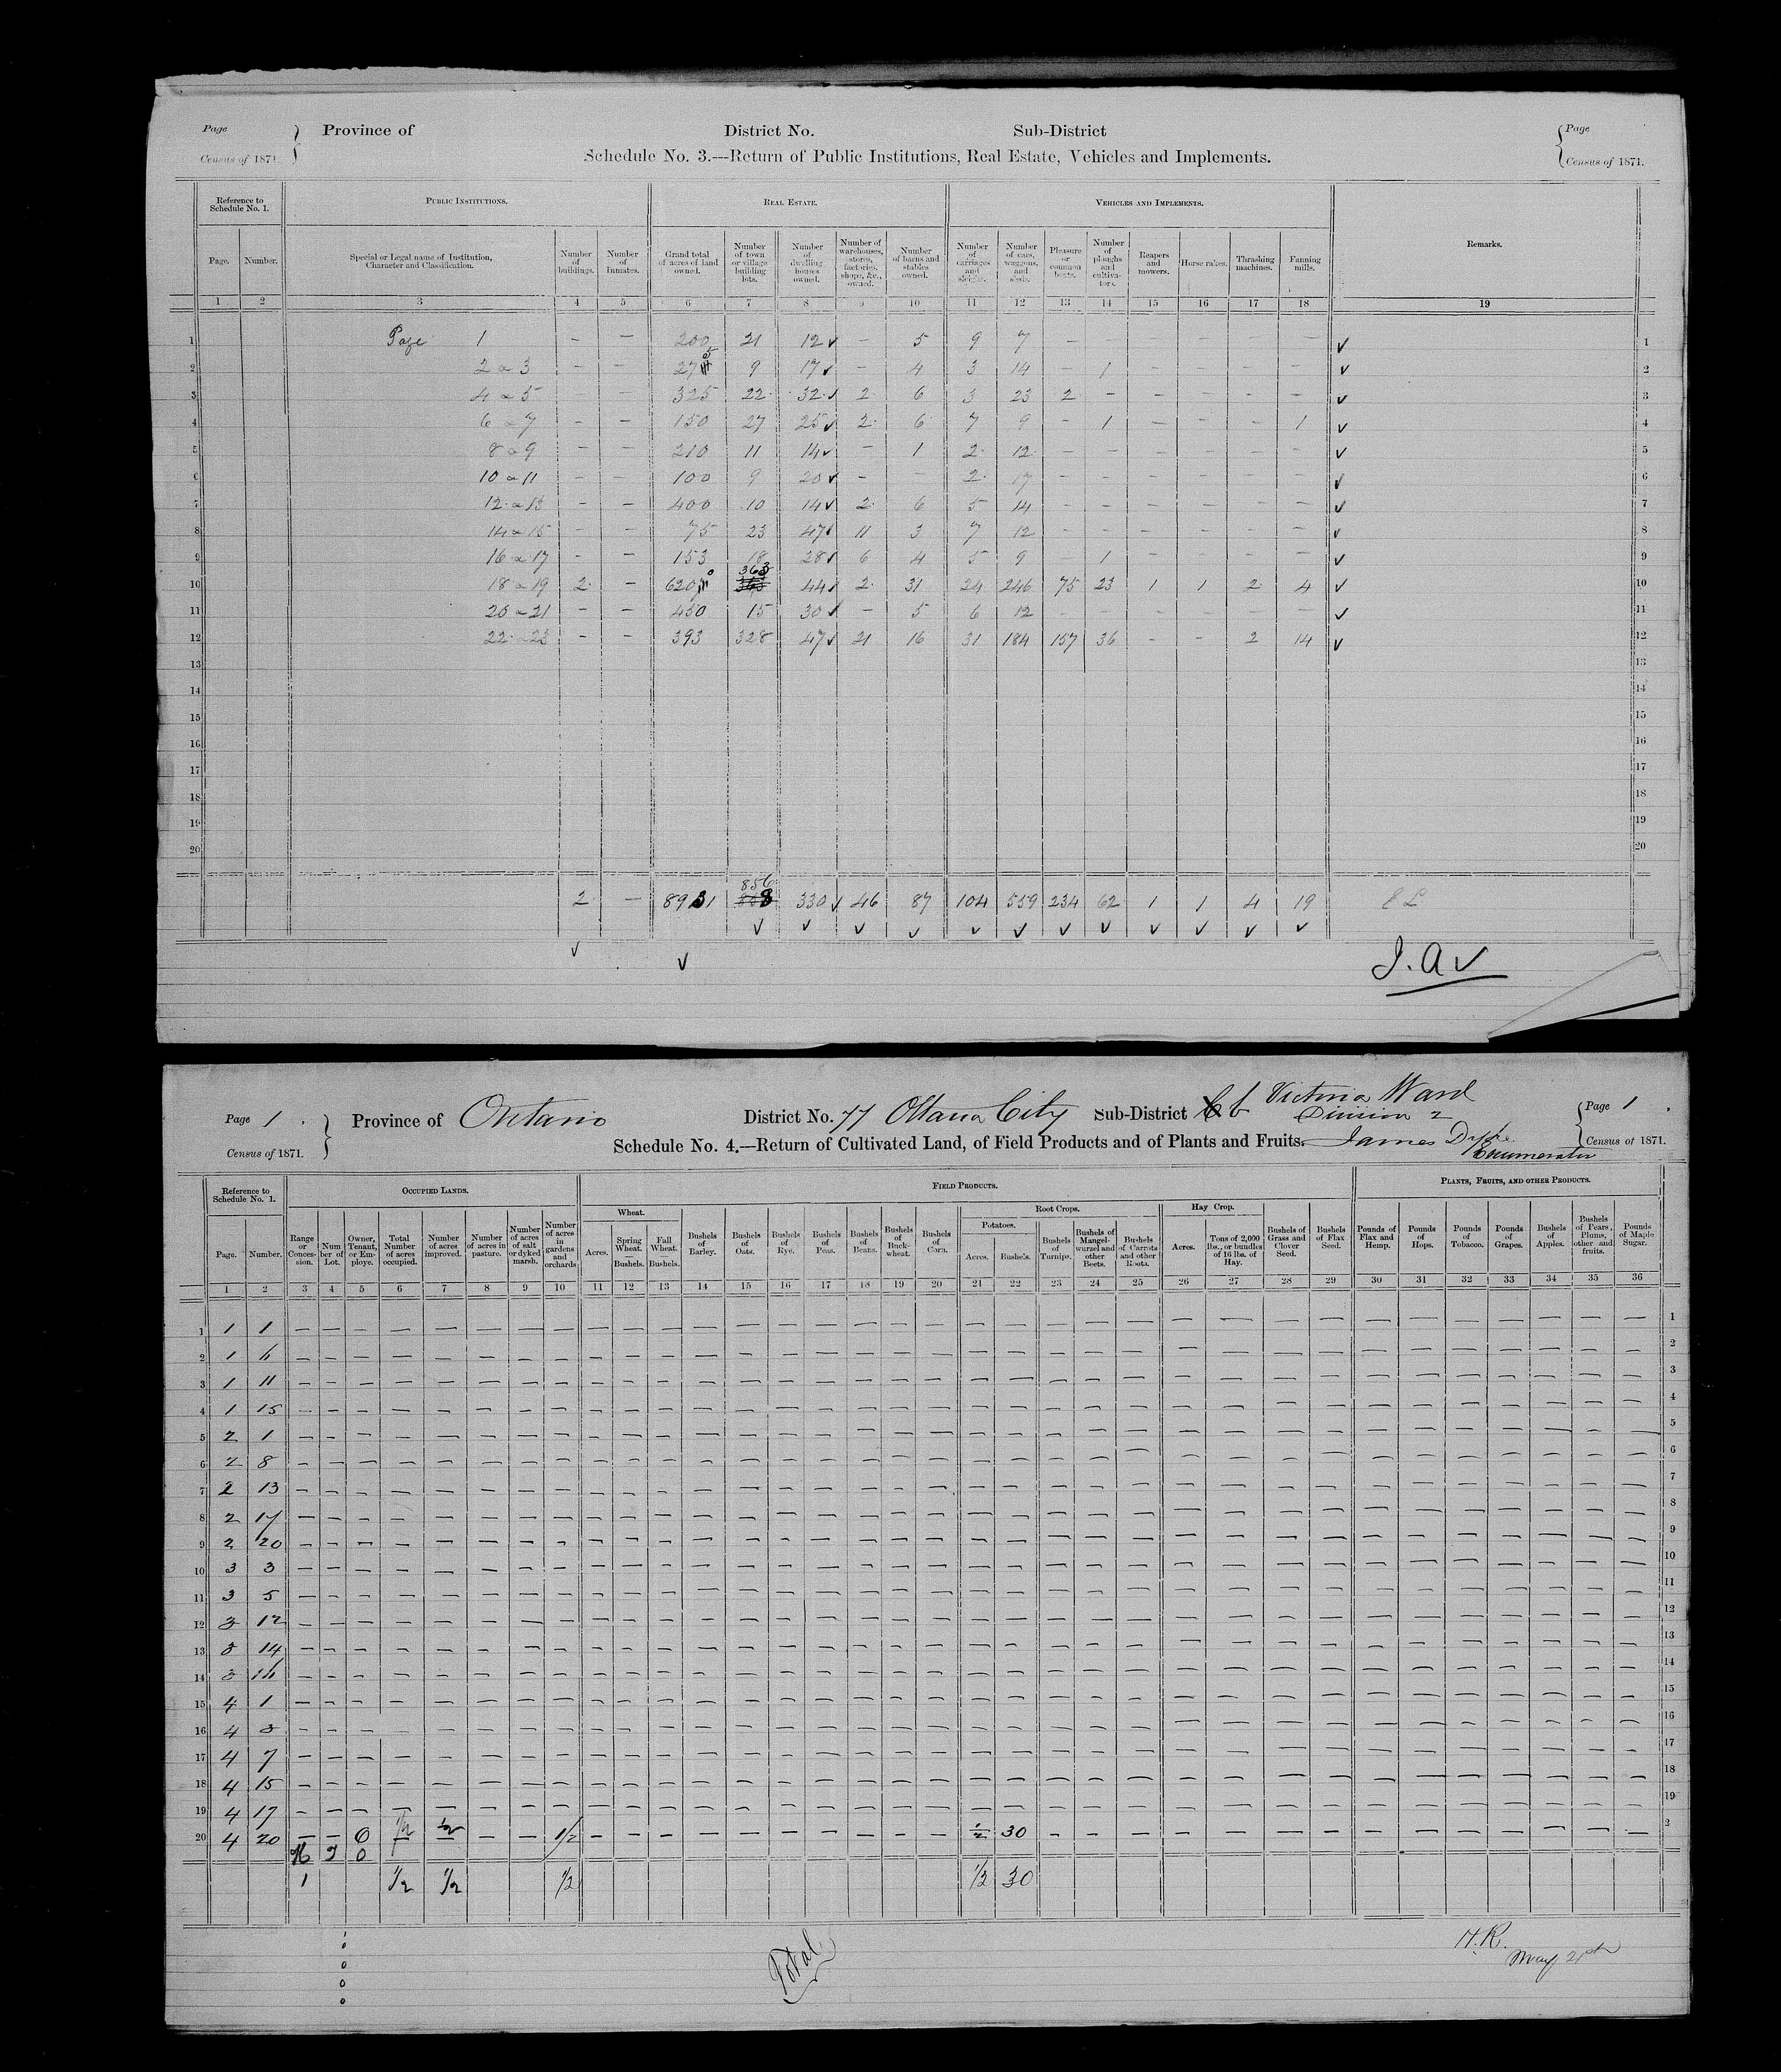 Title: Census of Canada, 1871 - Mikan Number: 142105 - Microform: c-10013